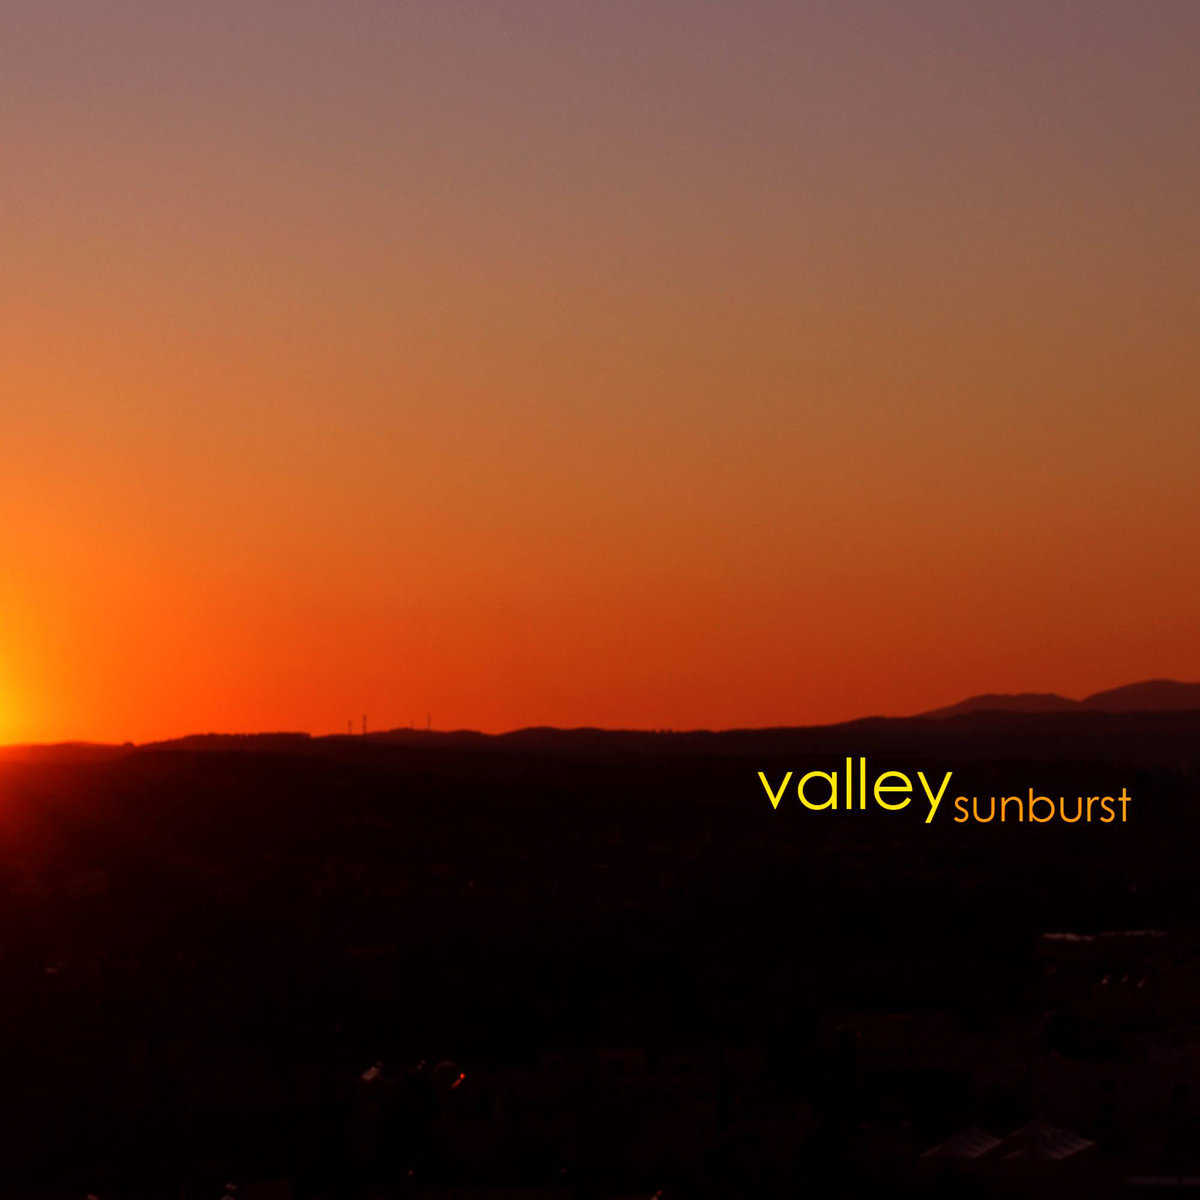 valley sunburst